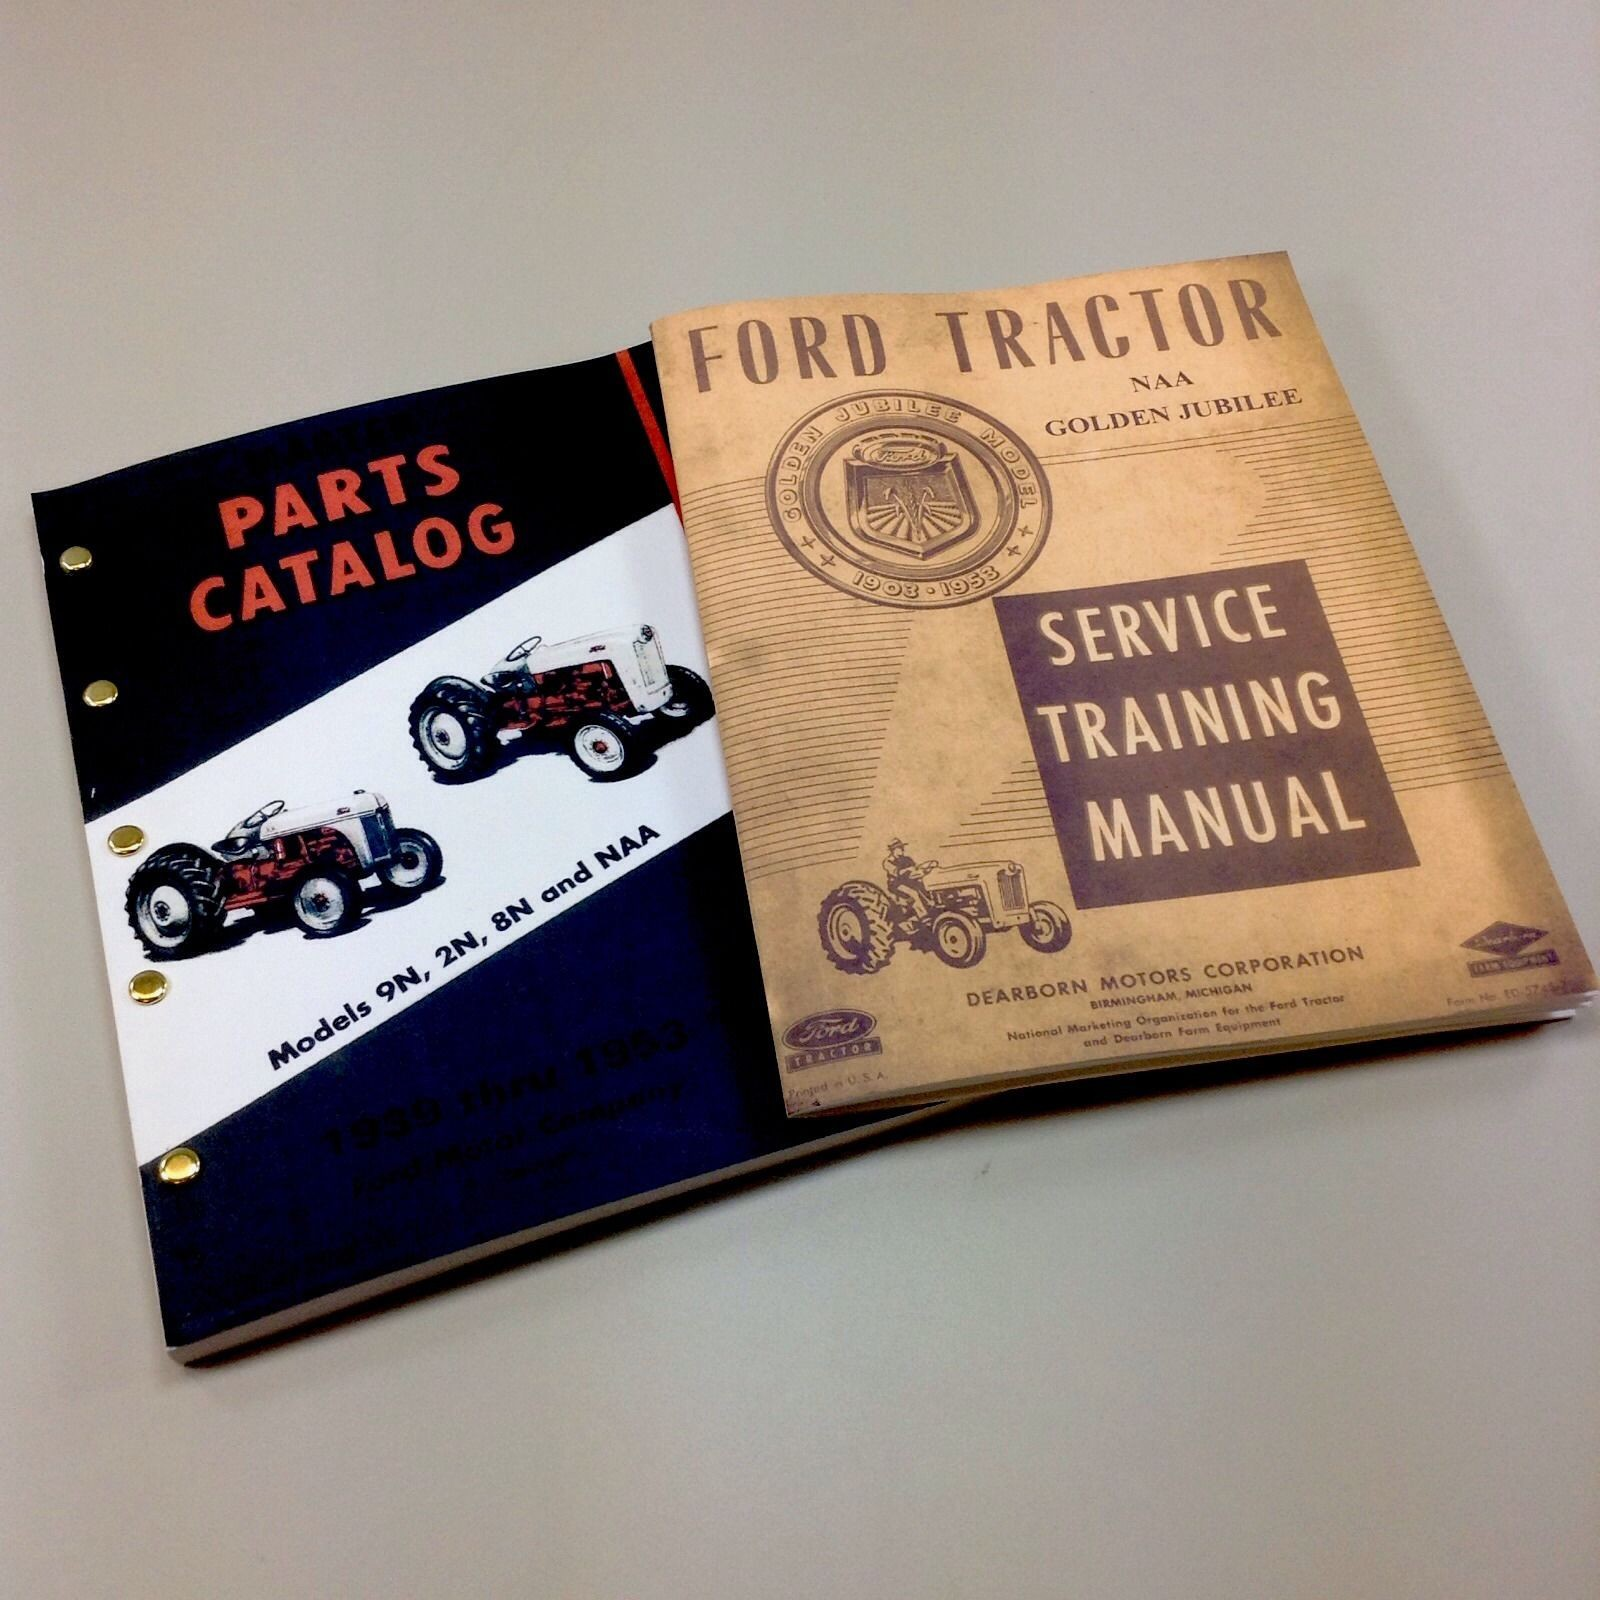 Ford Tractor Parts Diagram Lot ford Naa Golden Jubilee Tractor Service & Parts Manuals Repair Of Ford Tractor Parts Diagram